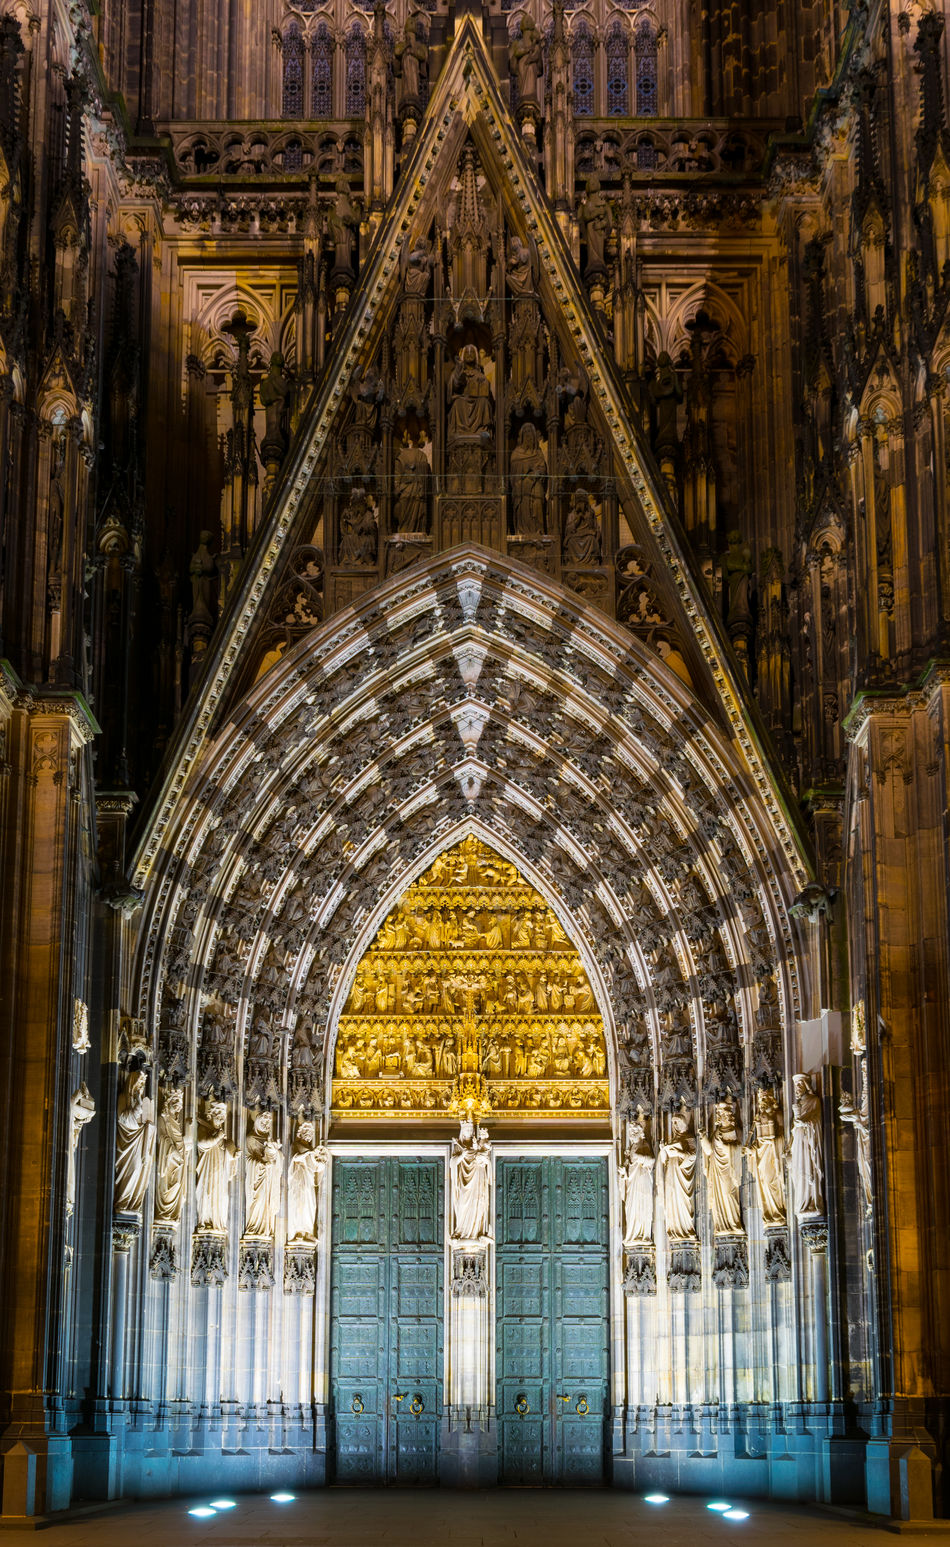 Arch Architecture Building Exterior Built Structure Cathedral Door Entrance Gate History Illuminated Night No People Religion Spirituality Tourism Travel Destinations